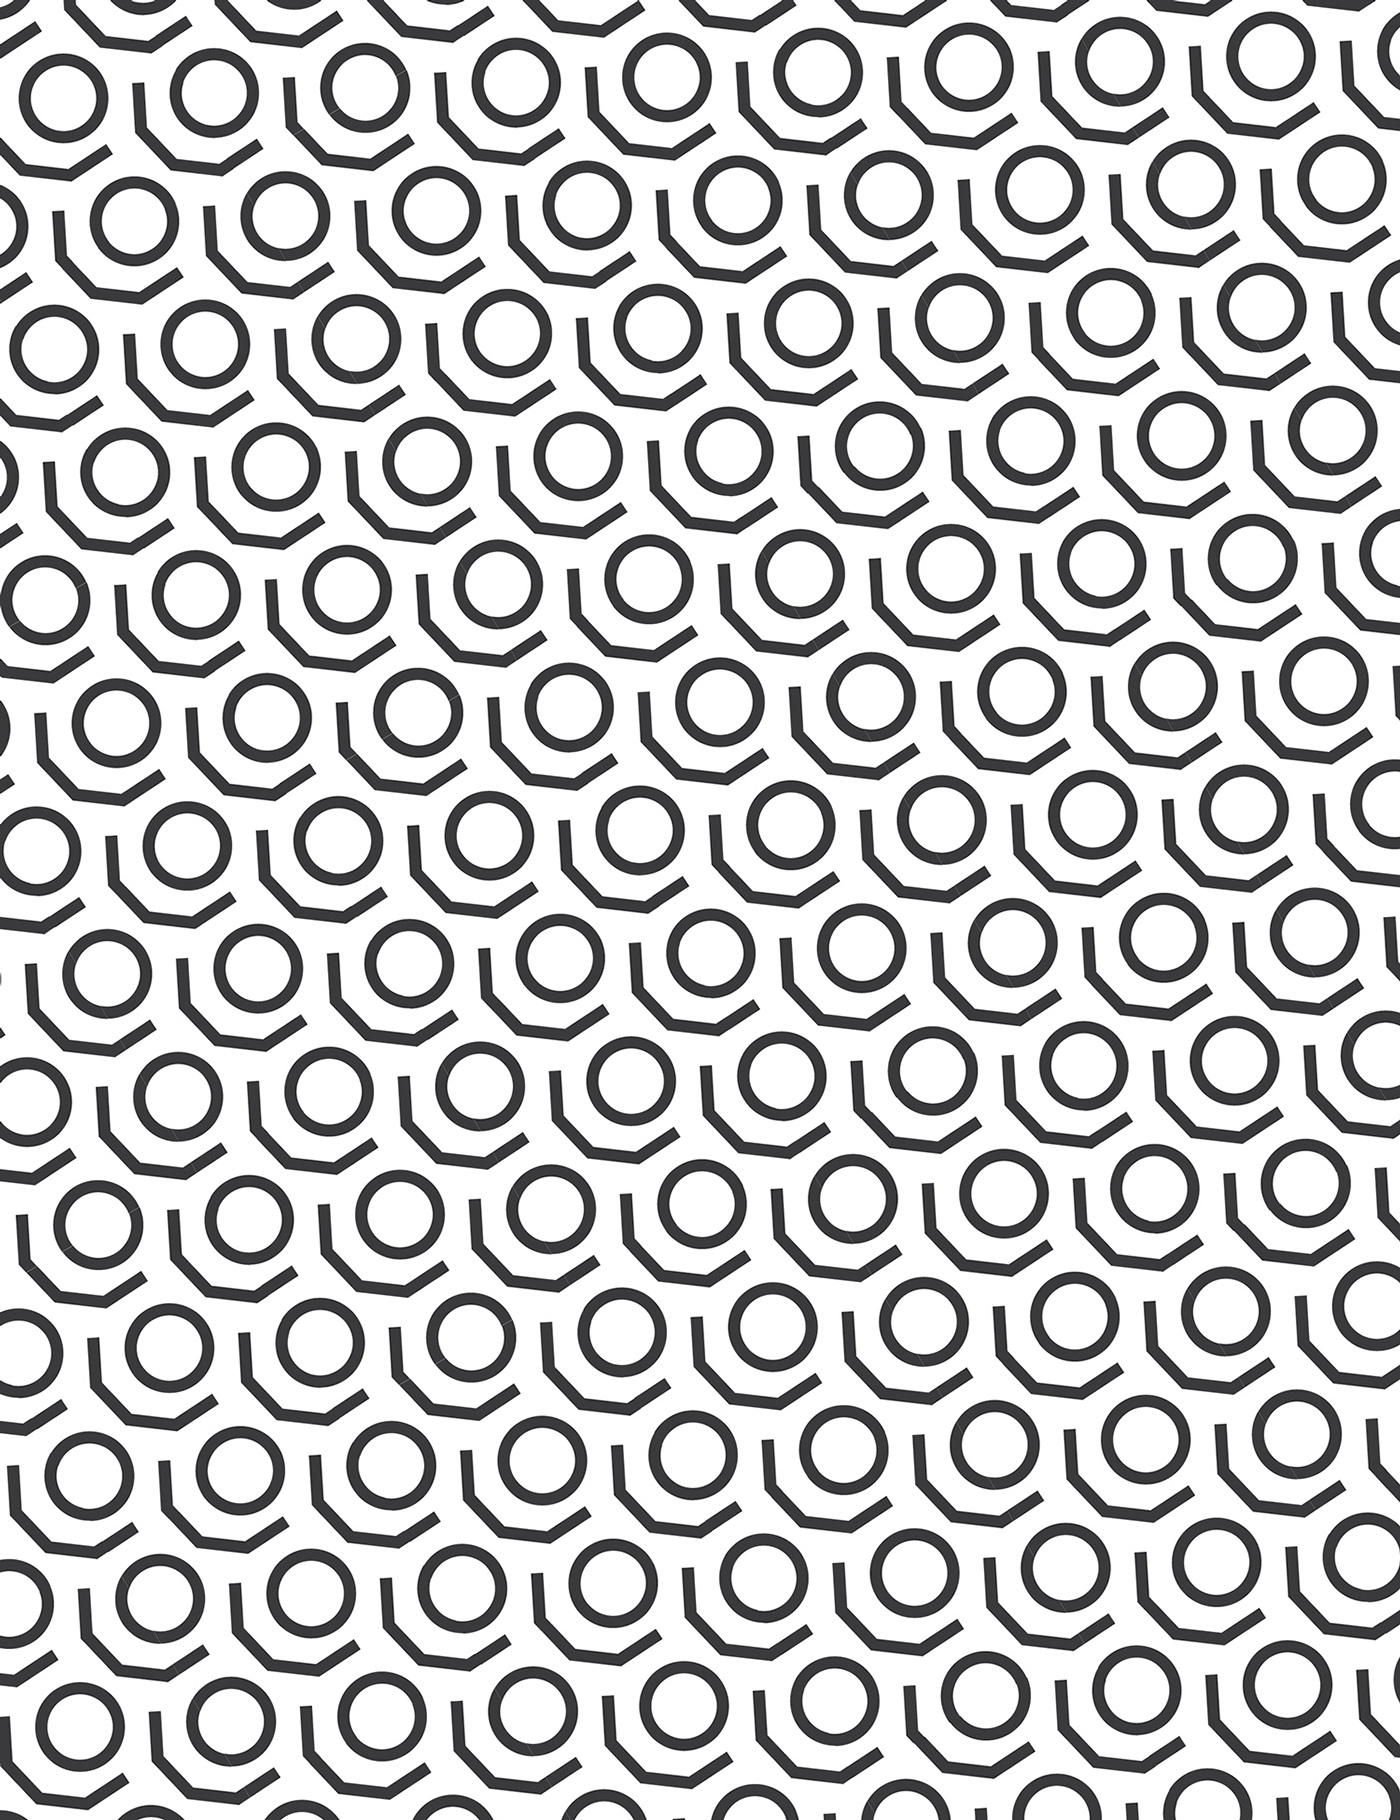 Line Art Patterns : Free line art patterns vector titanui